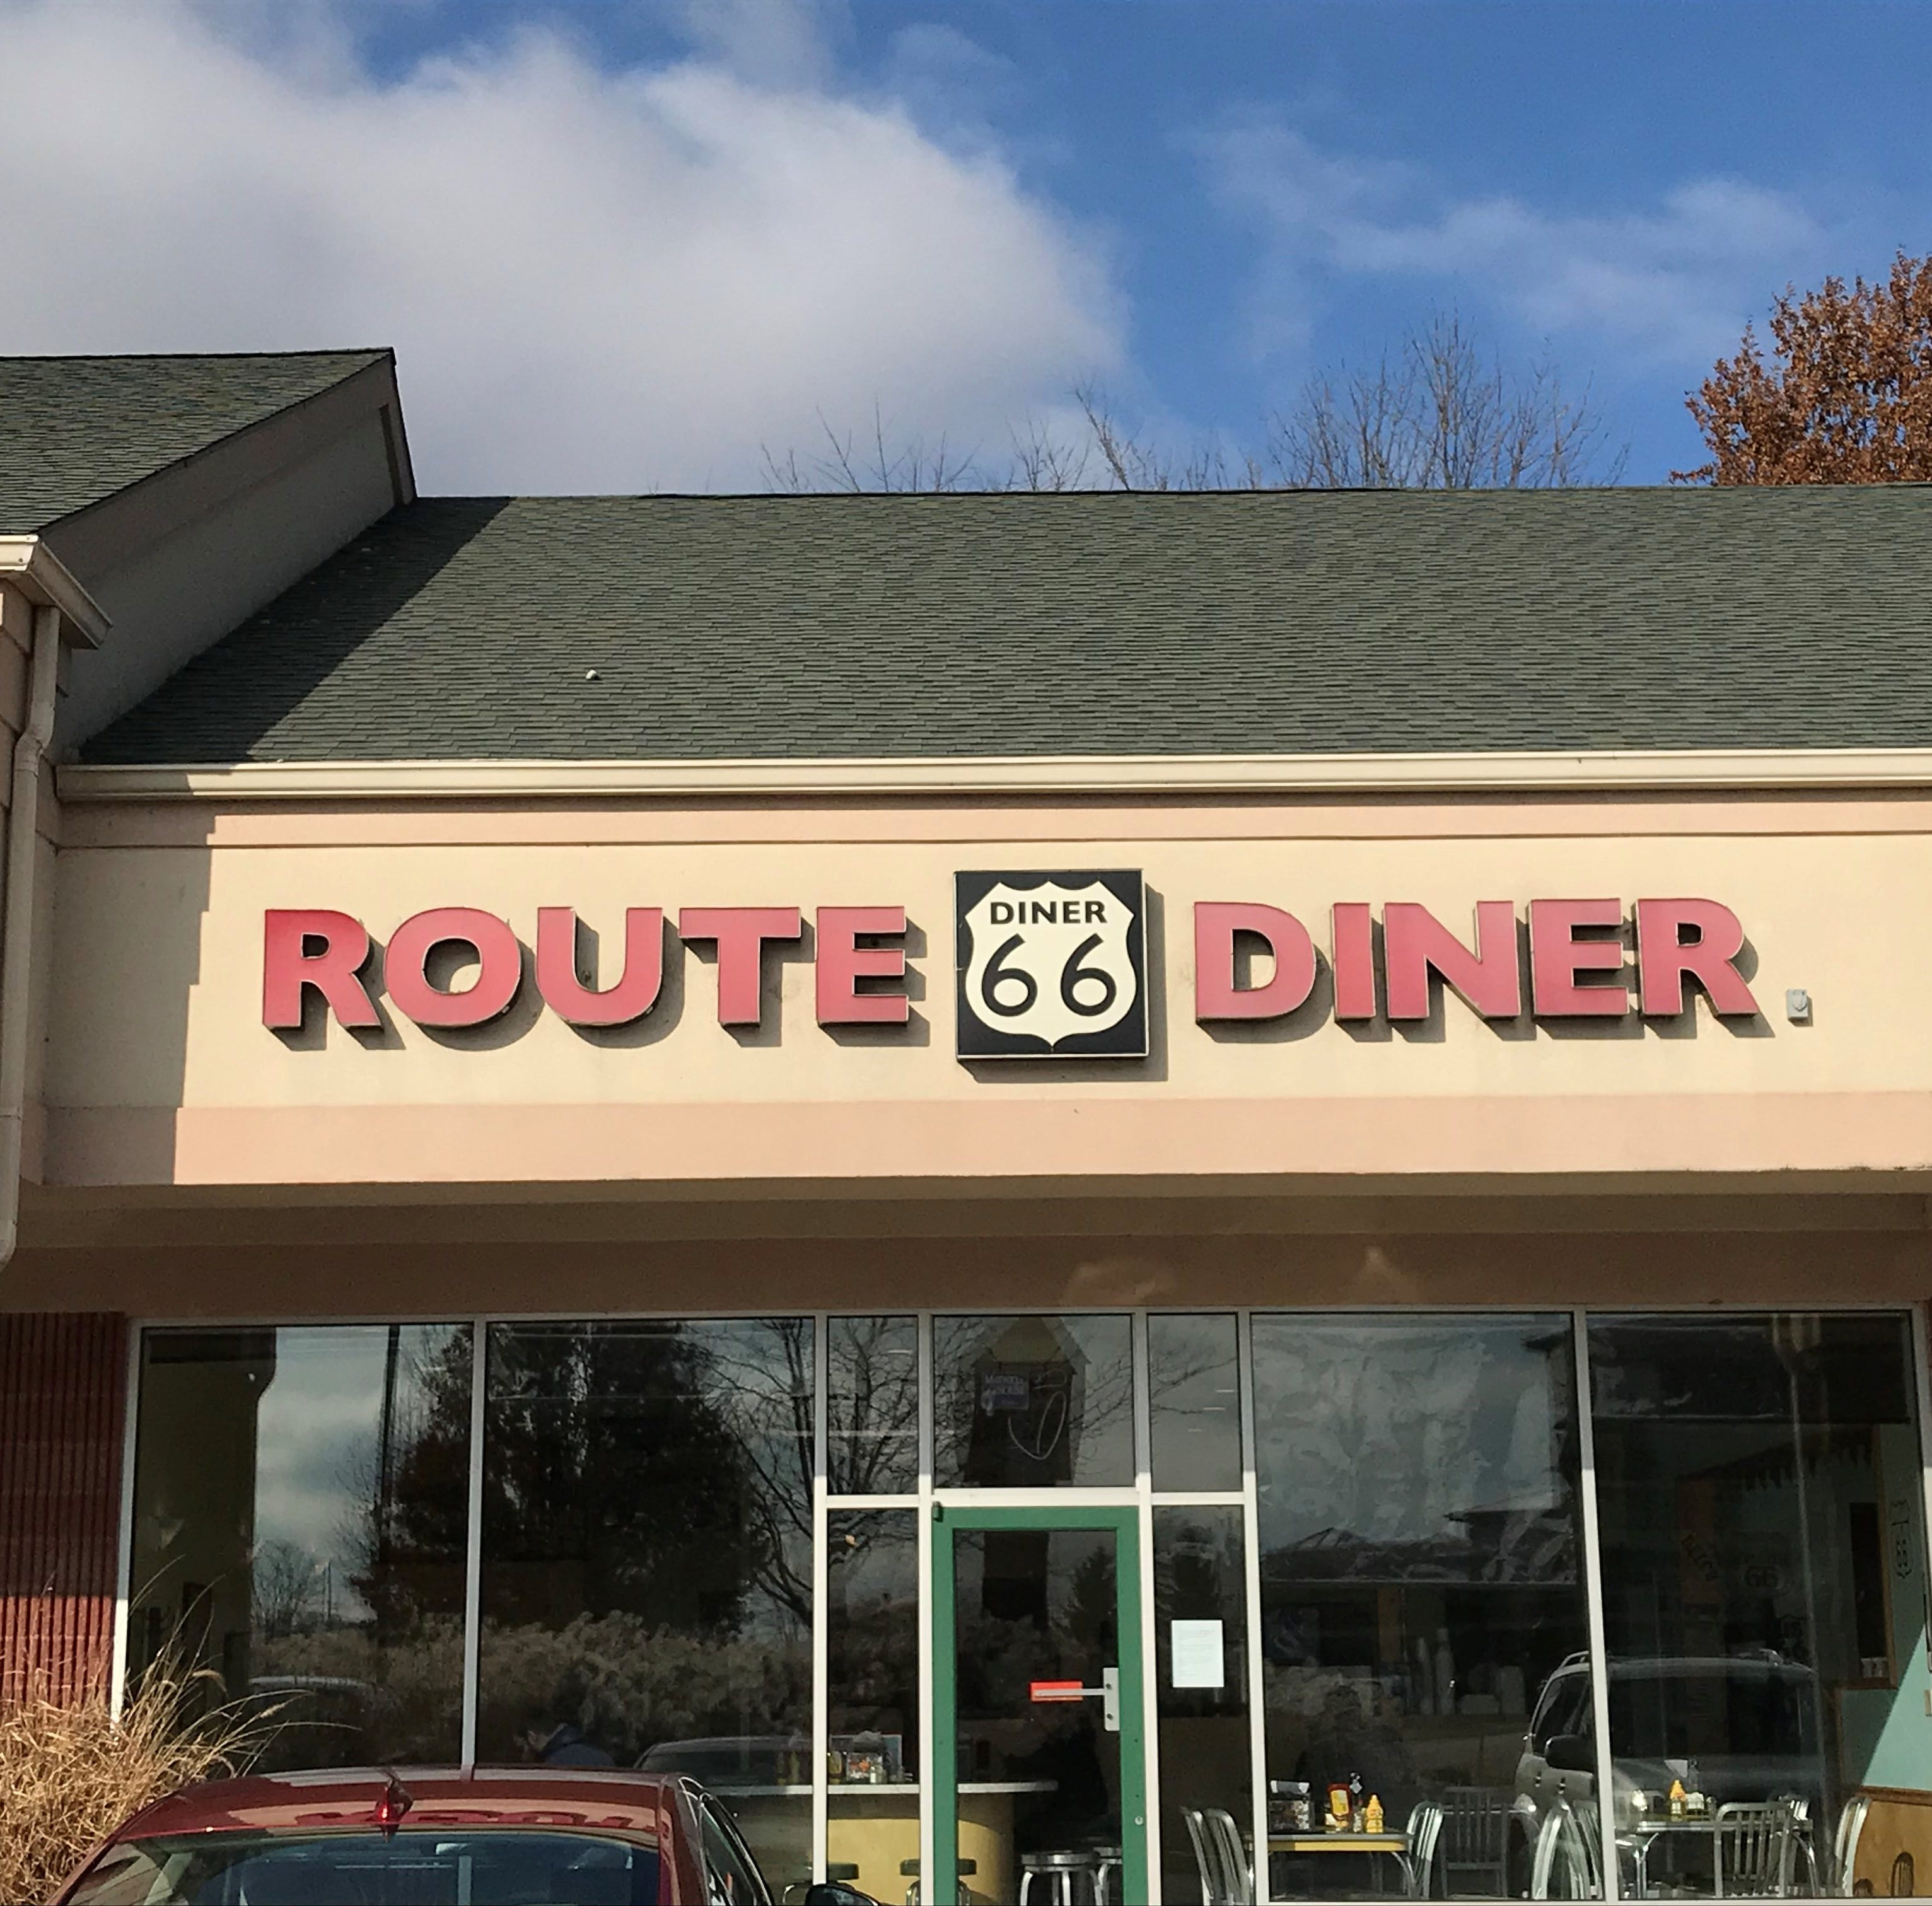 After 15 years of business, the Route 66 Diner will close its doors in West Lafayette after business hours on Sunday.